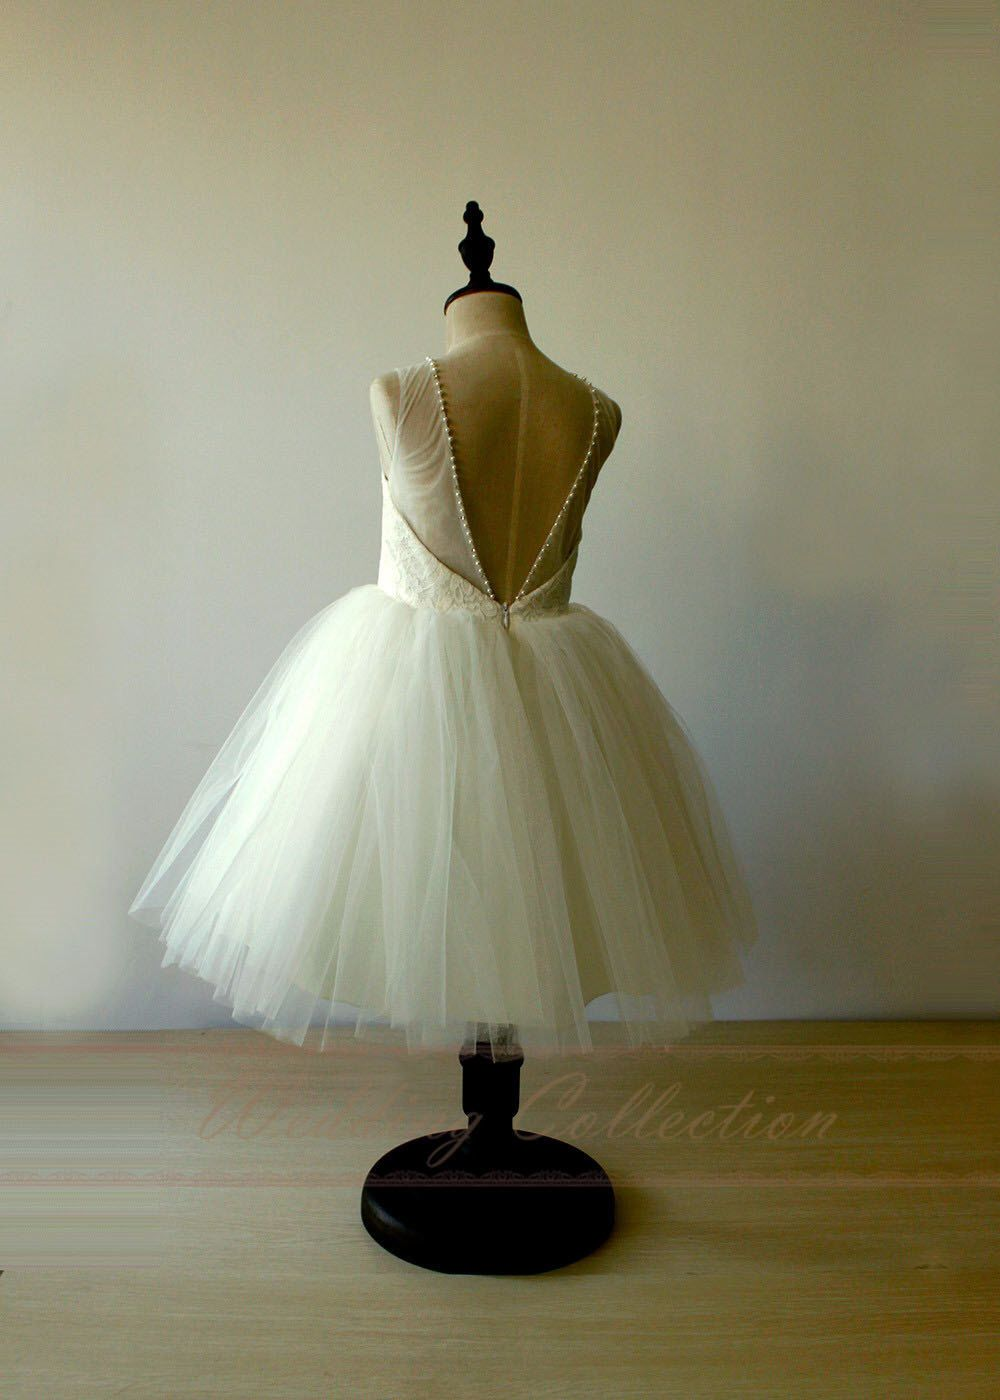 Tutu Ivory Flower Girl Dress Open Back Lace Tulle Birthday Dress with Pearls by Weddingcollection on Etsy https://www.etsy.com/listing/482022382/tutu-ivory-flower-girl-dress-open-back